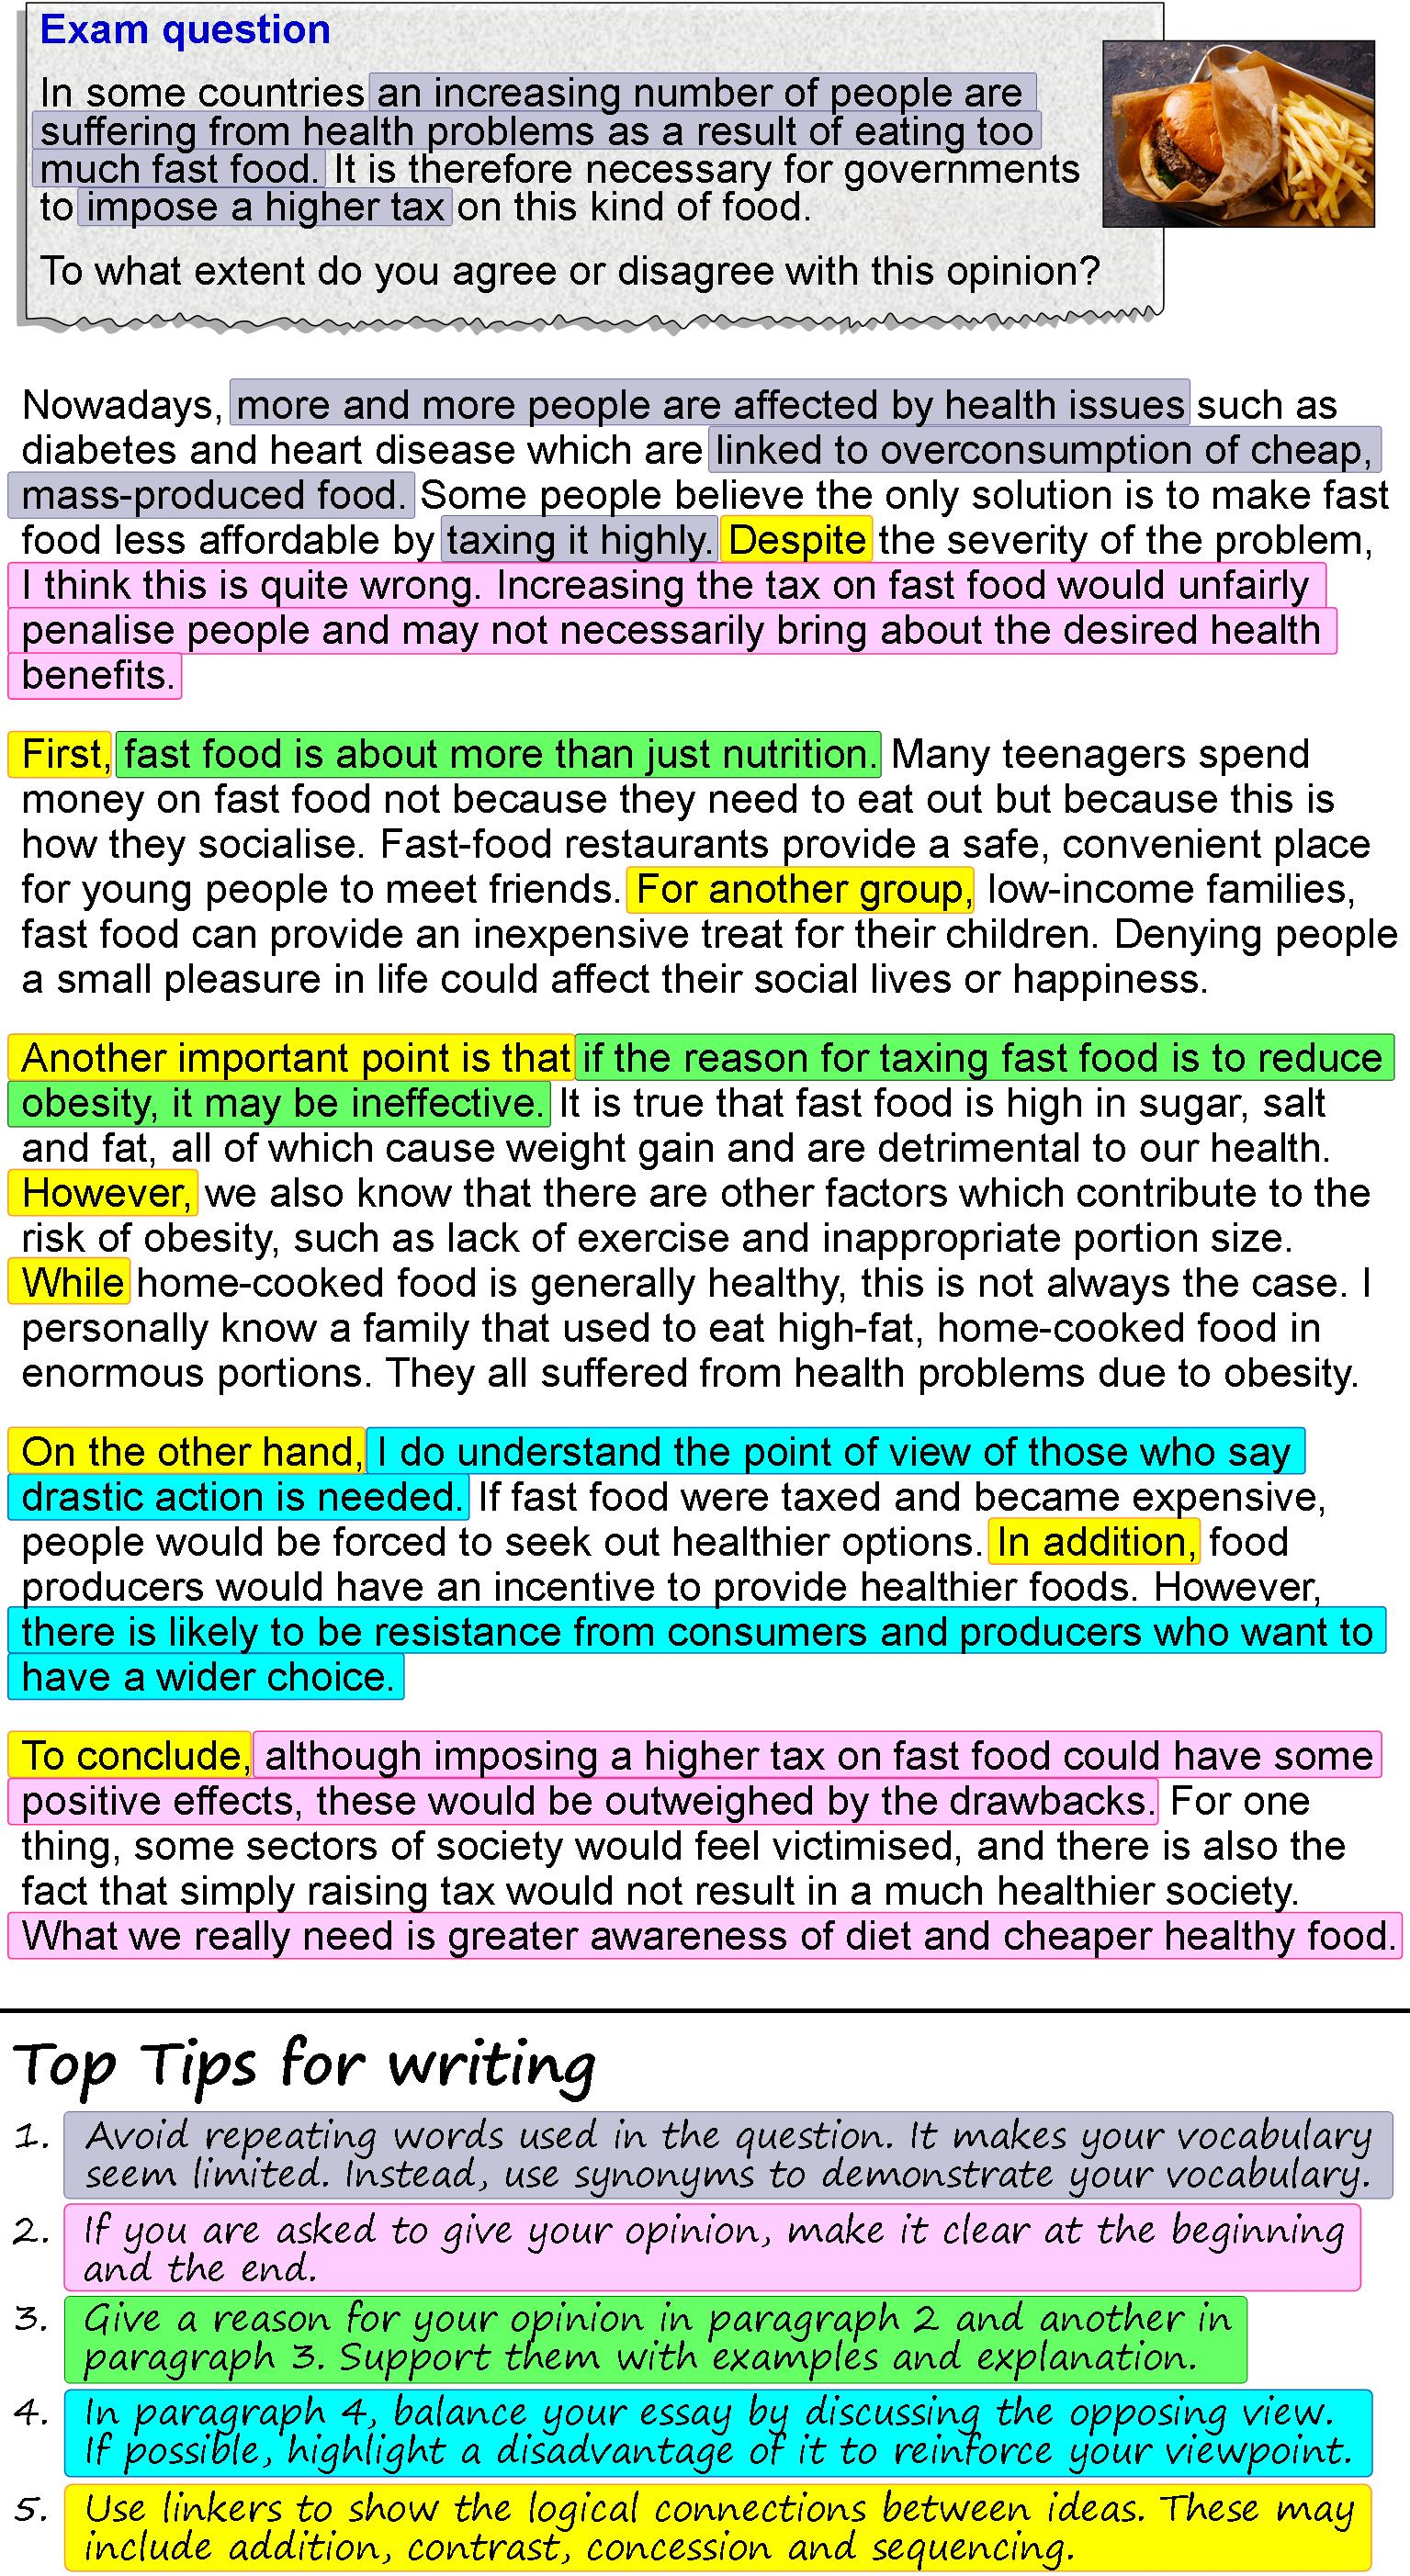 001 Opinion Essay About Fast Food Example An 4 Unbelievable British Council Short